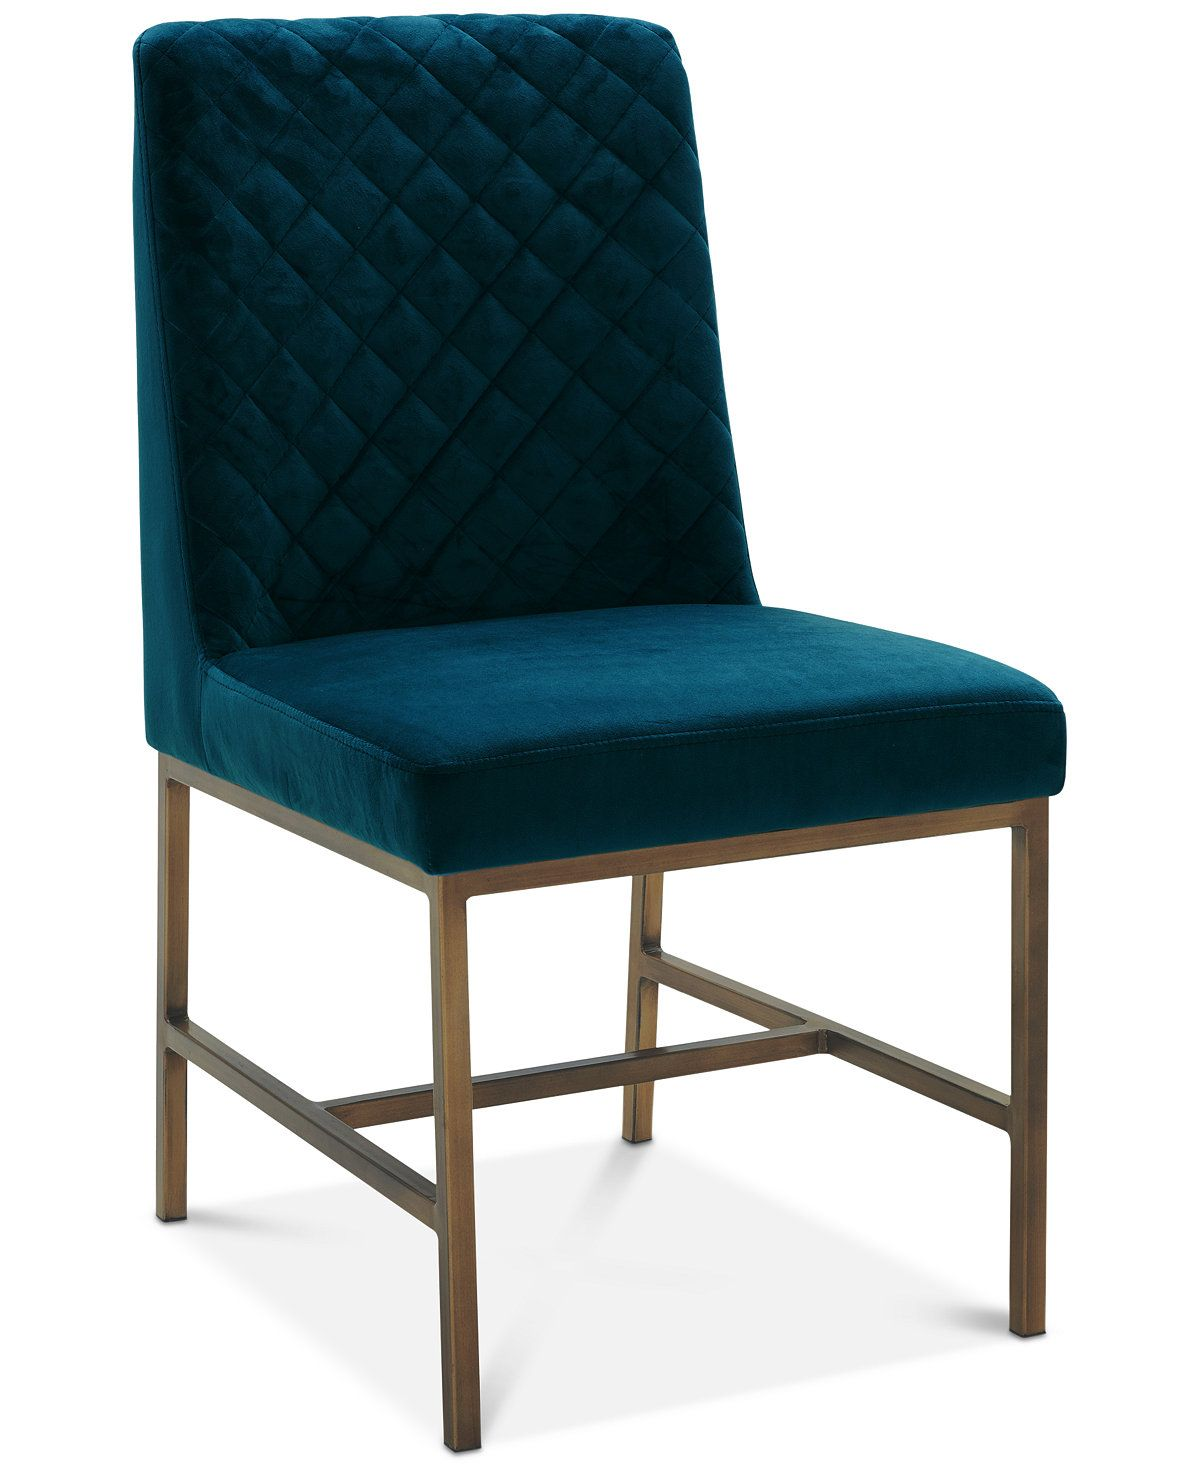 Cambridge Dining Side Chair (Teal) - Dining Room Chairs & Benches - Furniture - Macy's